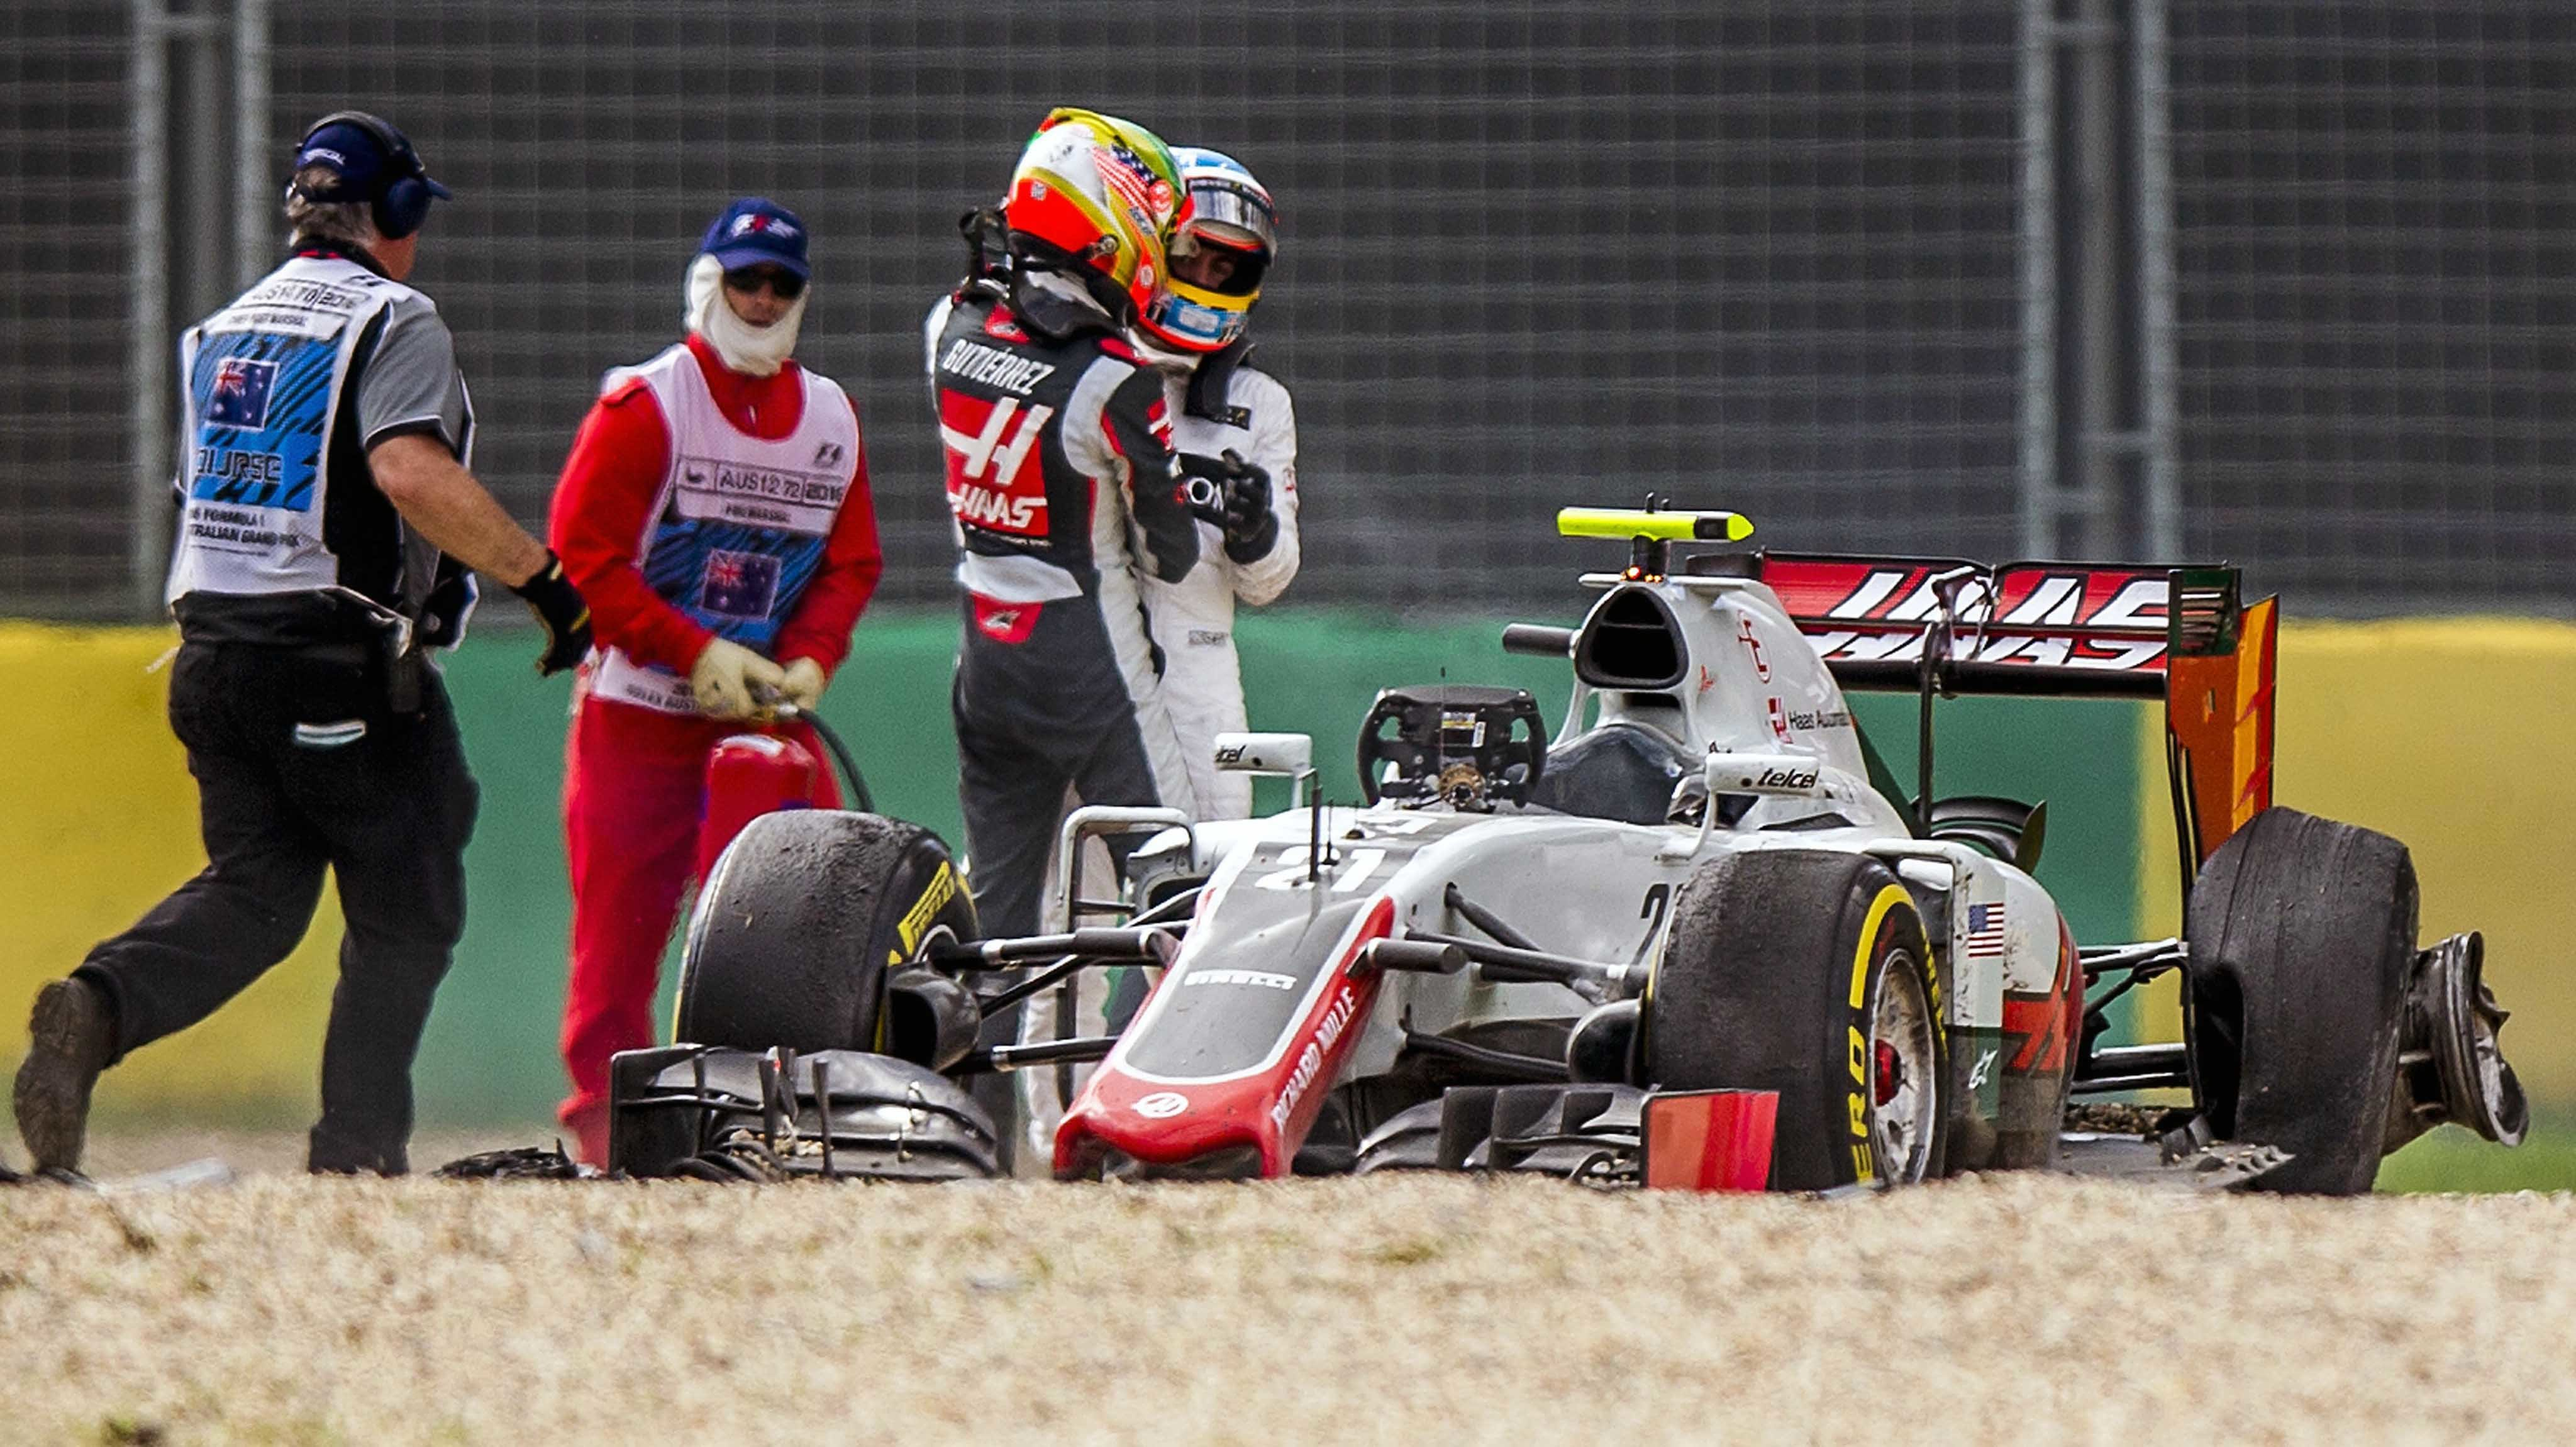 SUKI006. Melbourne (Australia), 20/03/2016.- Spanish Formula One driver Fernando Alonso (R) of McLaren-Honda and Mexican Formula One driver Esteban Gutierrez (2-R) of Haas F1 Team after a crash during the Australian Formula One Grand Prix at the Albe